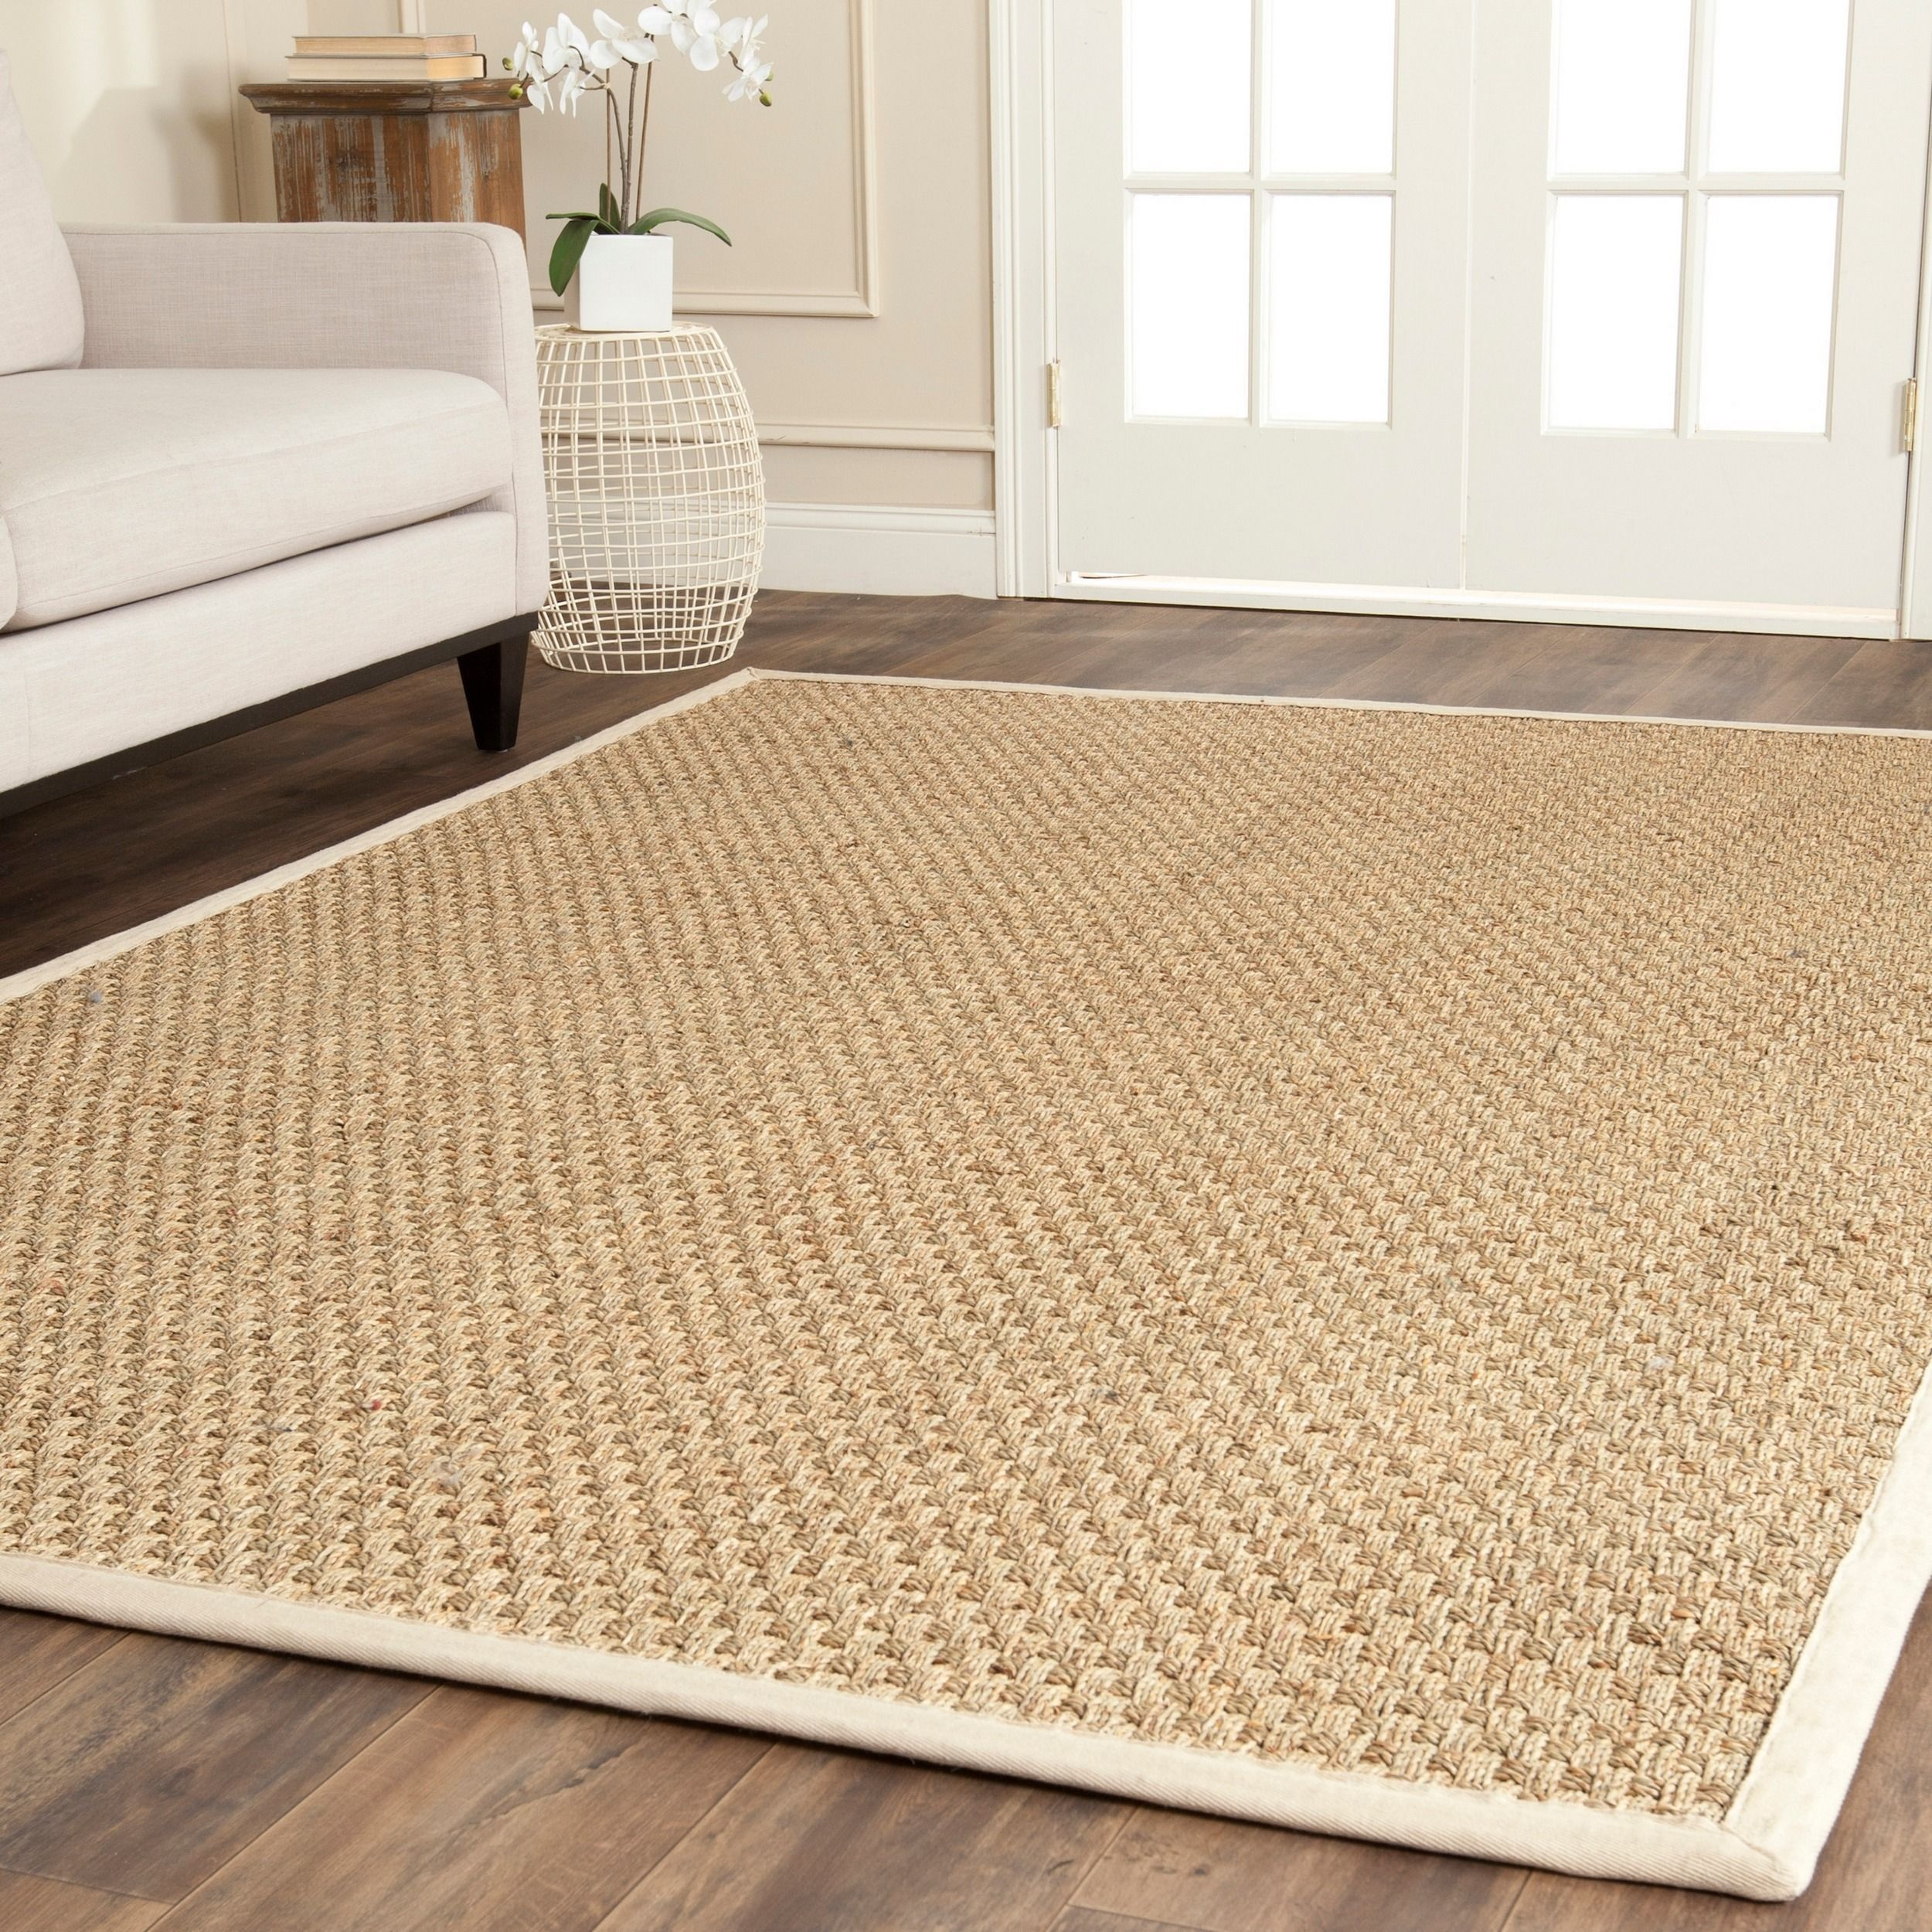 Safavieh hand woven natural fiber natural ivory seagrass rug x